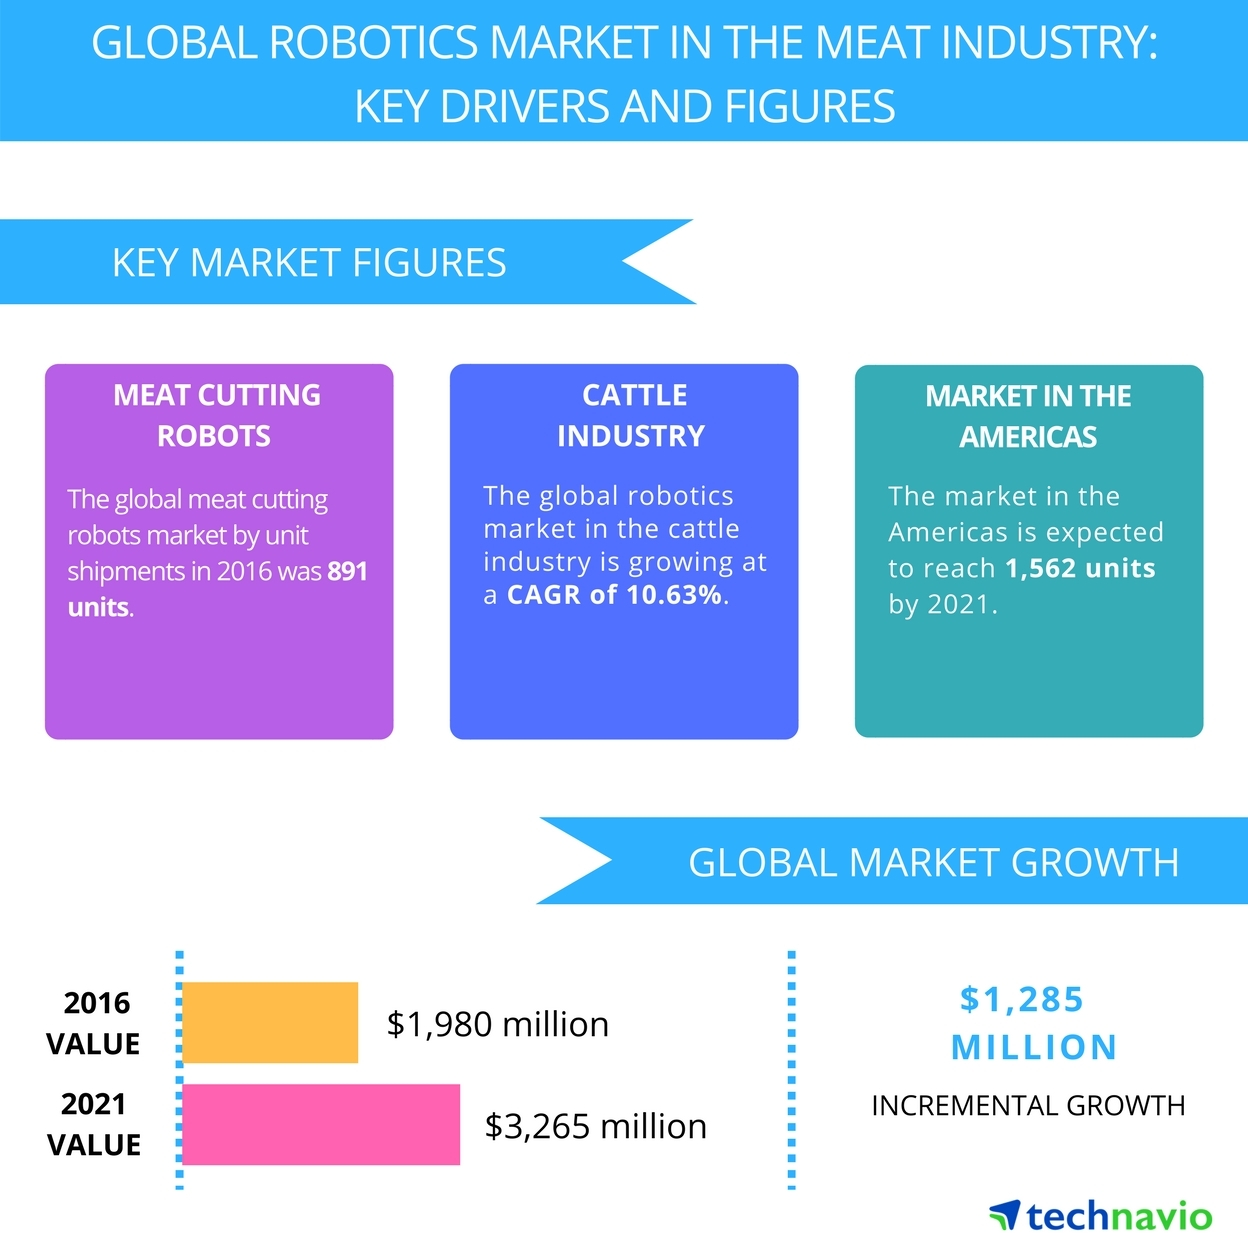 Technavio has published a new report on the global robotics market in the meat industry from 2017-2021. (Graphic: Business Wire)